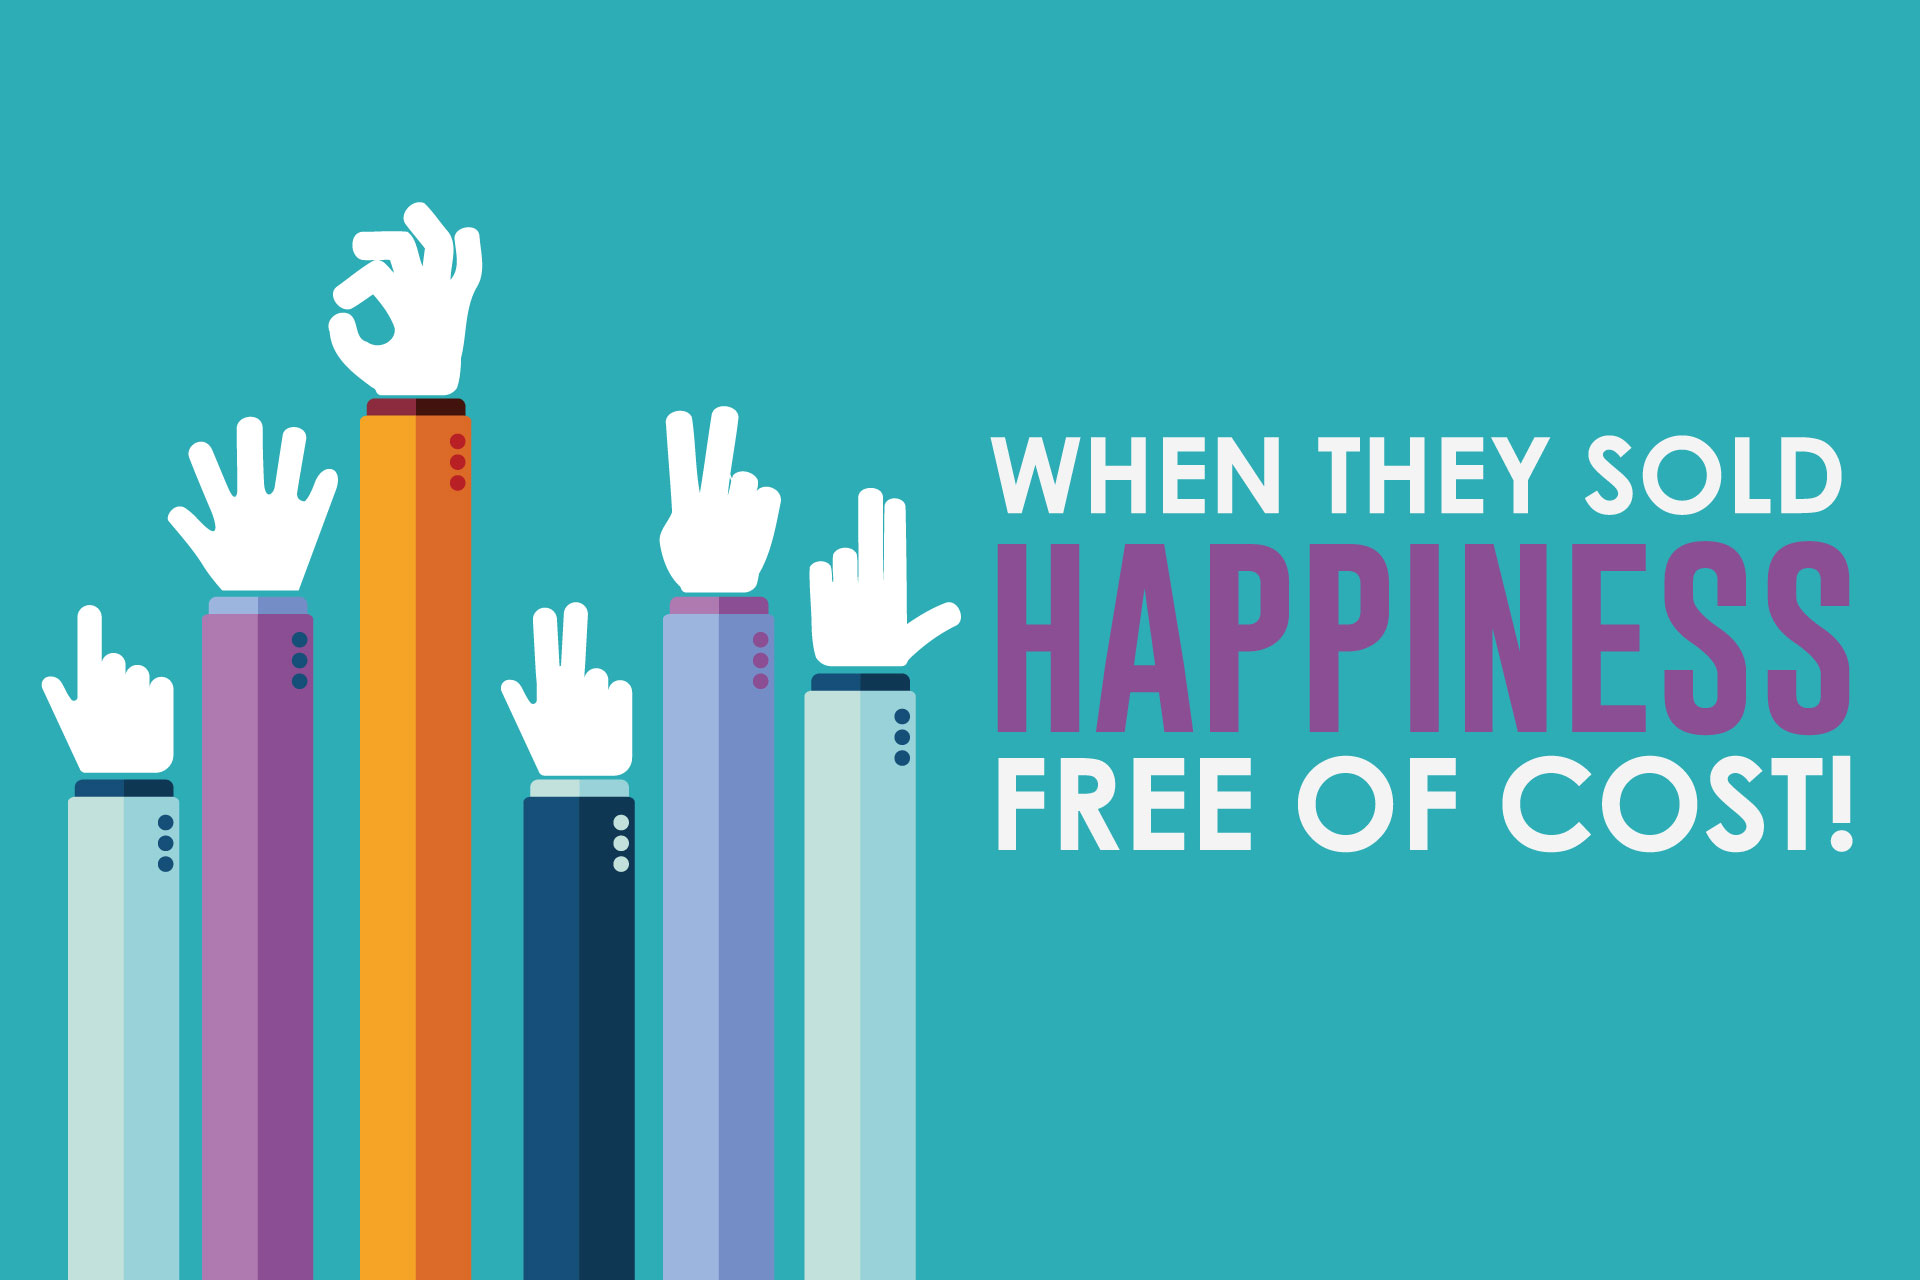 When they sold Happiness free of cost!